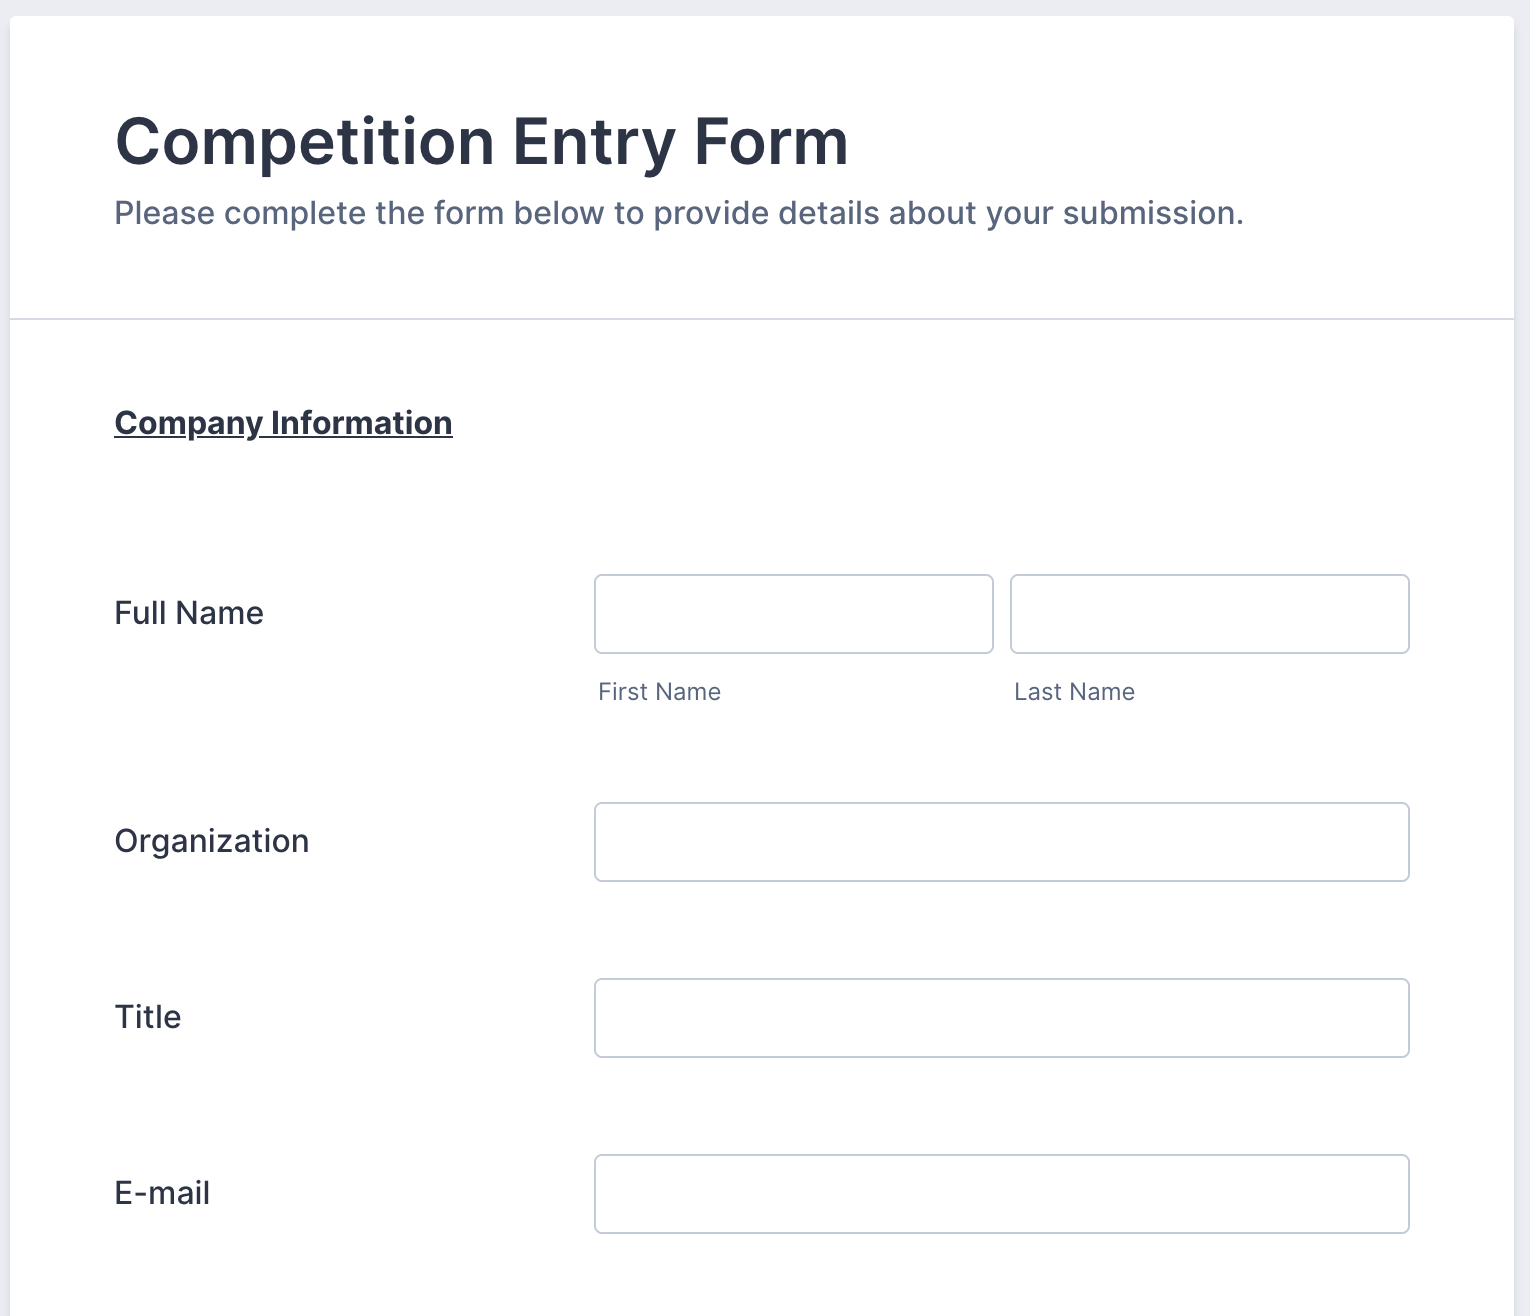 Competition Entry Form Template